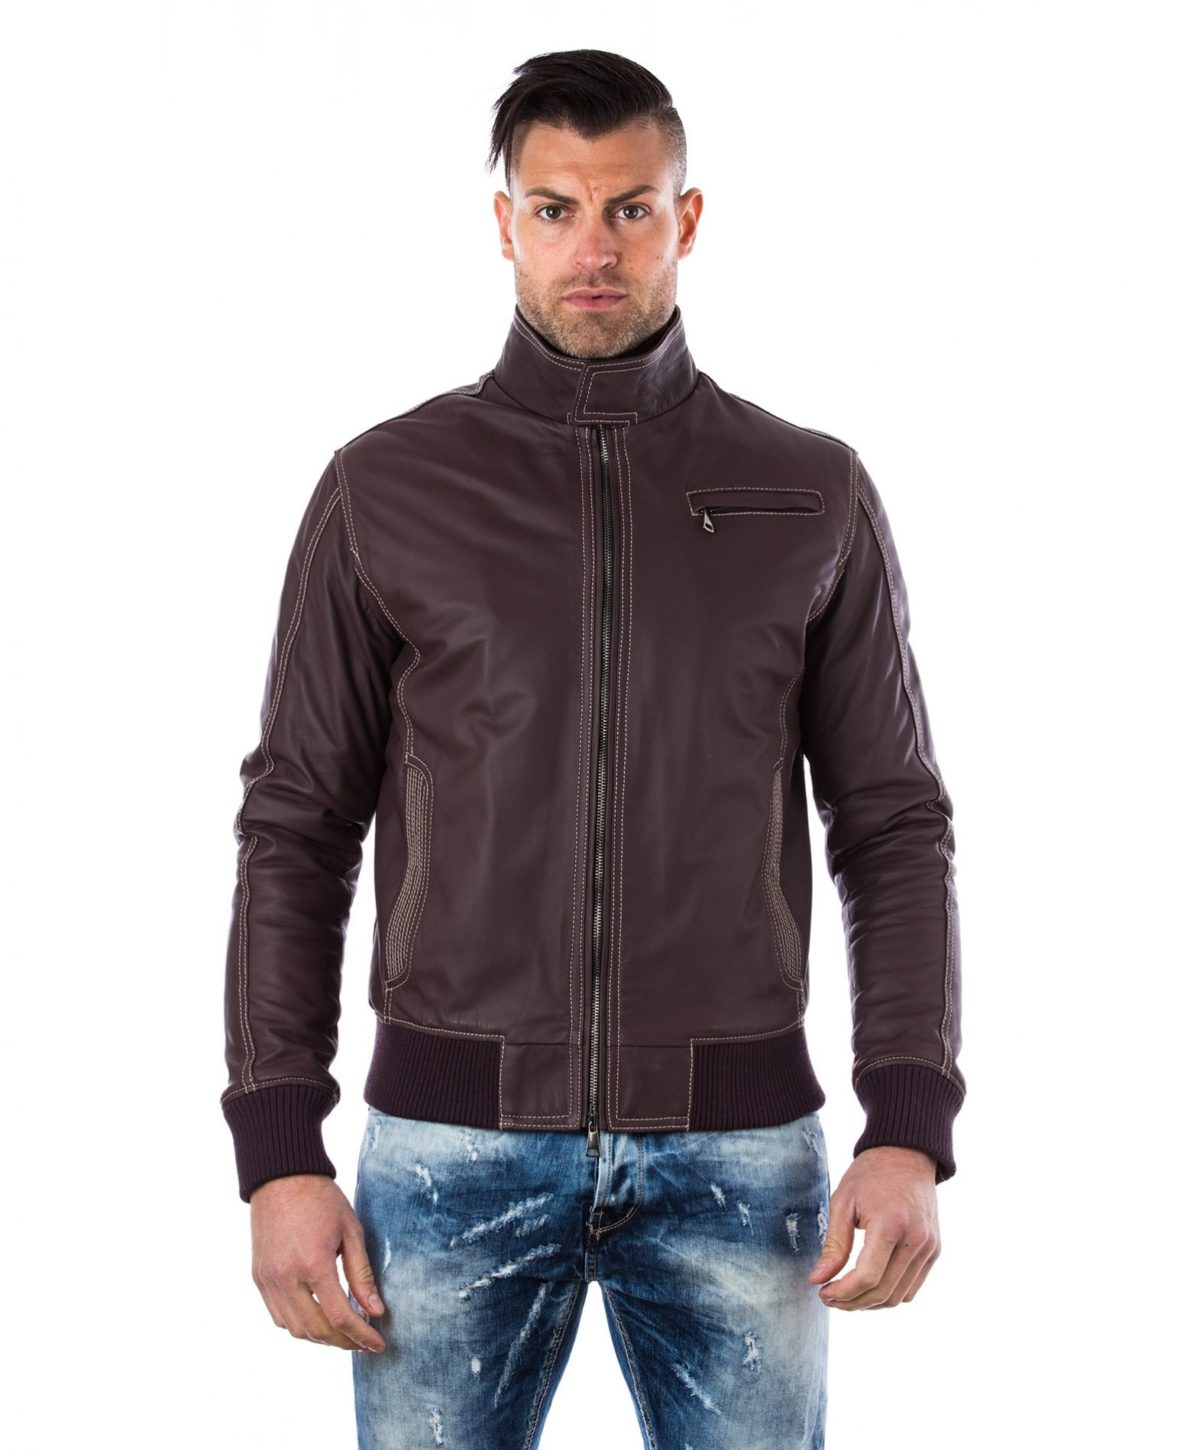 men-s-leather-jacket-genuine-soft-leather-style-bomber-one-zip-pocket-wine-color-thil